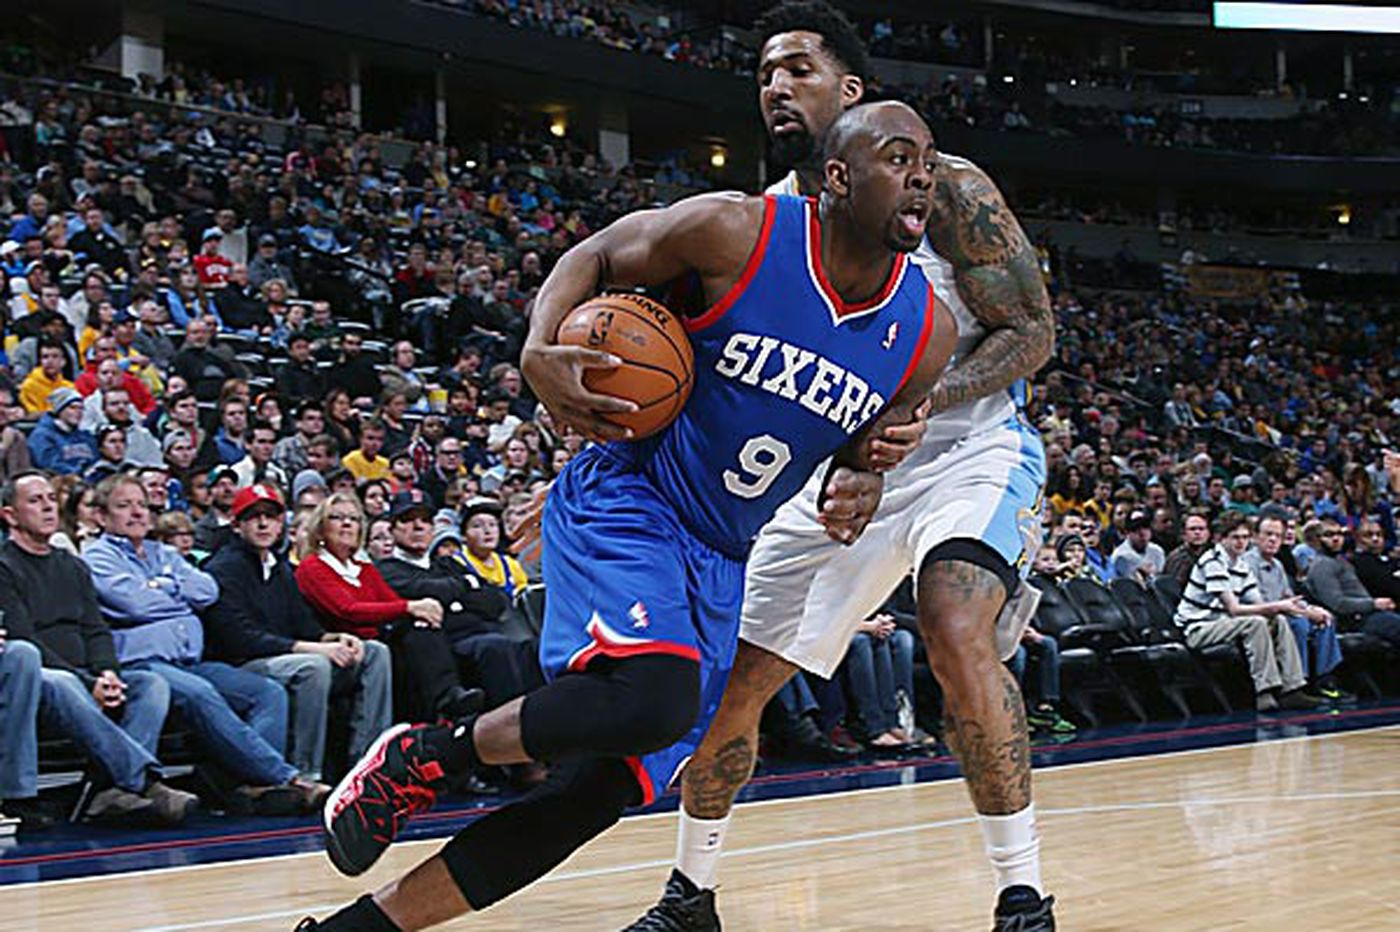 Sixers waive Anderson before free-agent market opens